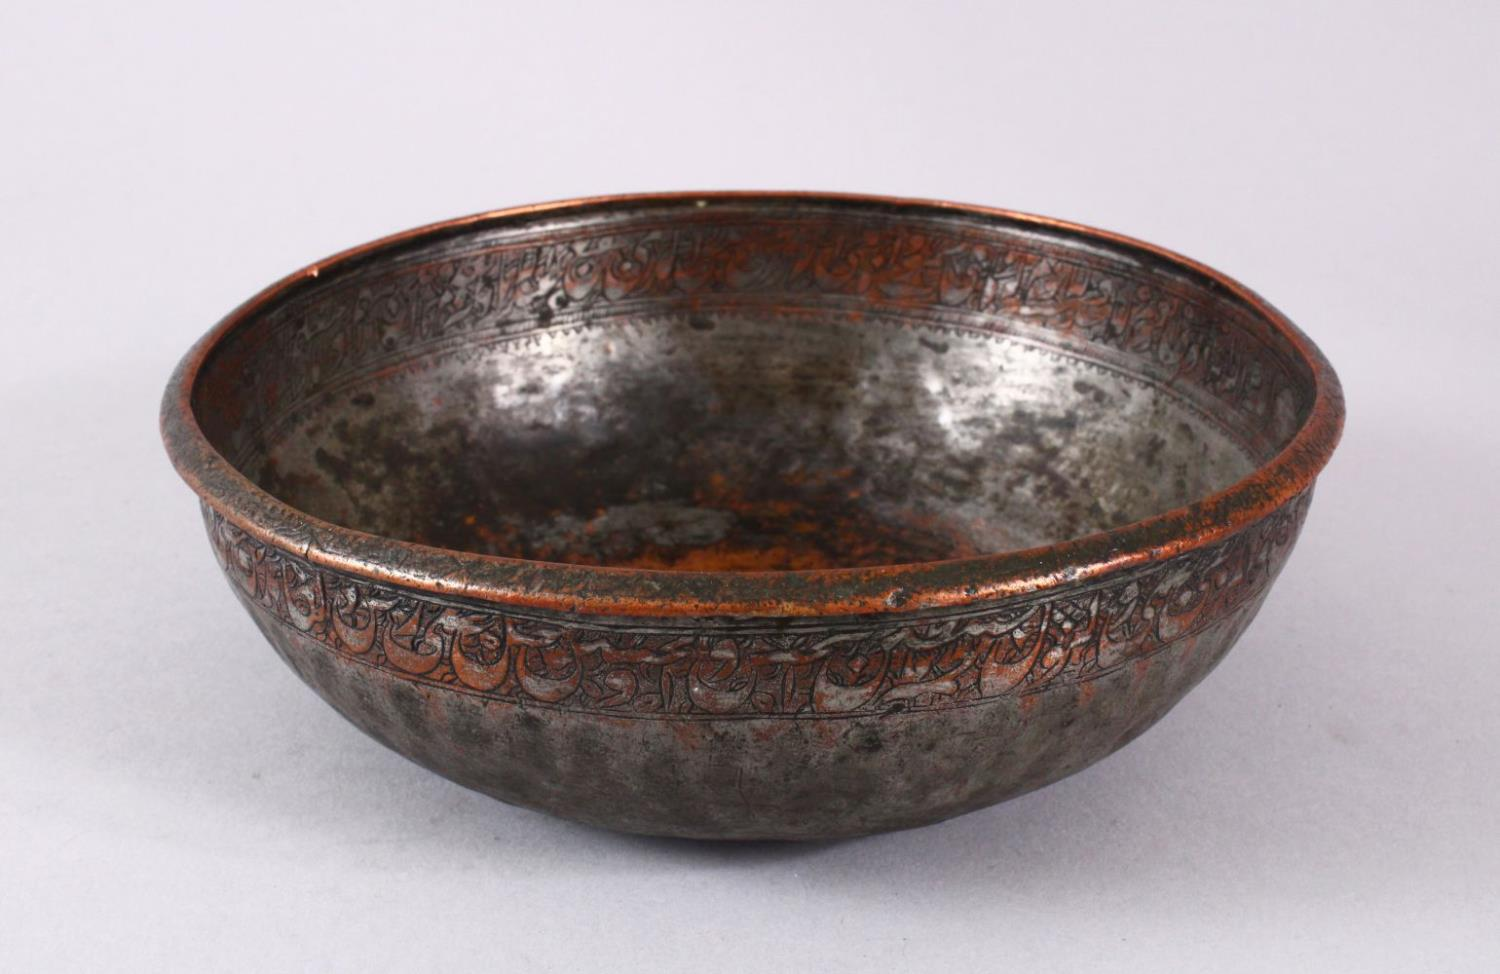 A UNUSUAL ISLAMIC TINNED HAMMERED COPPER CALLIGRAPHIC BOWL, decorated with interior & exterior bands